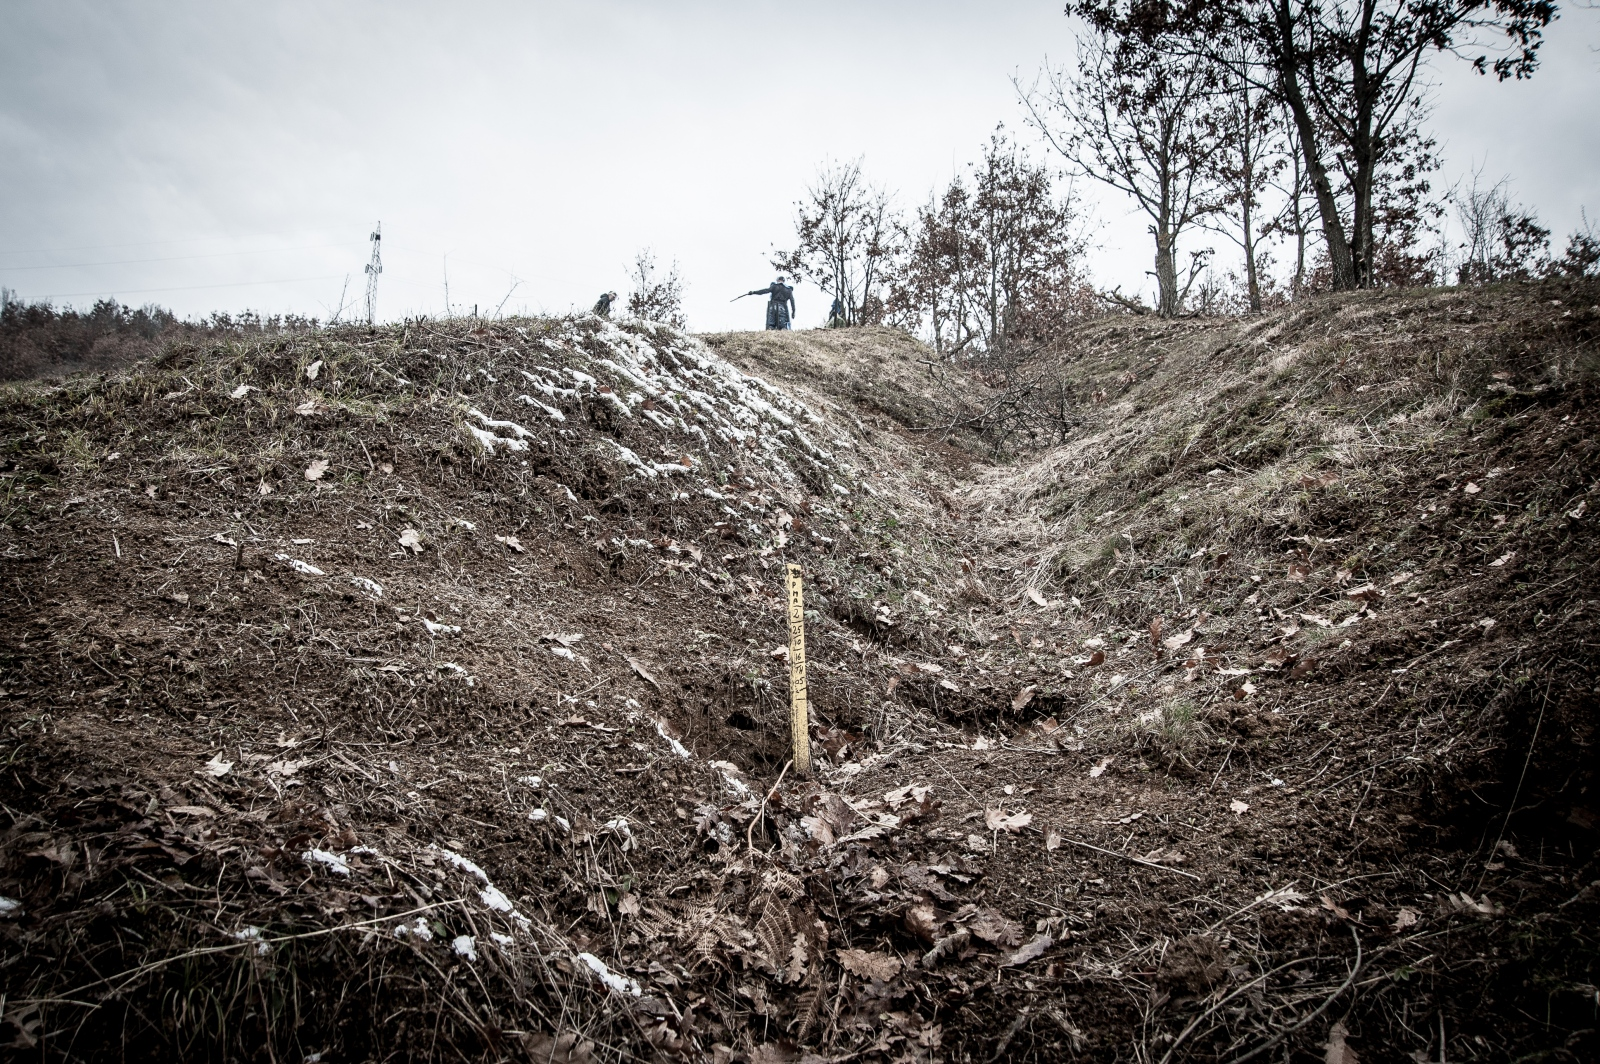 A yellow stake indicates where a landmine was found and deactivated among the woods in northwestern Kosovo. December 2016.